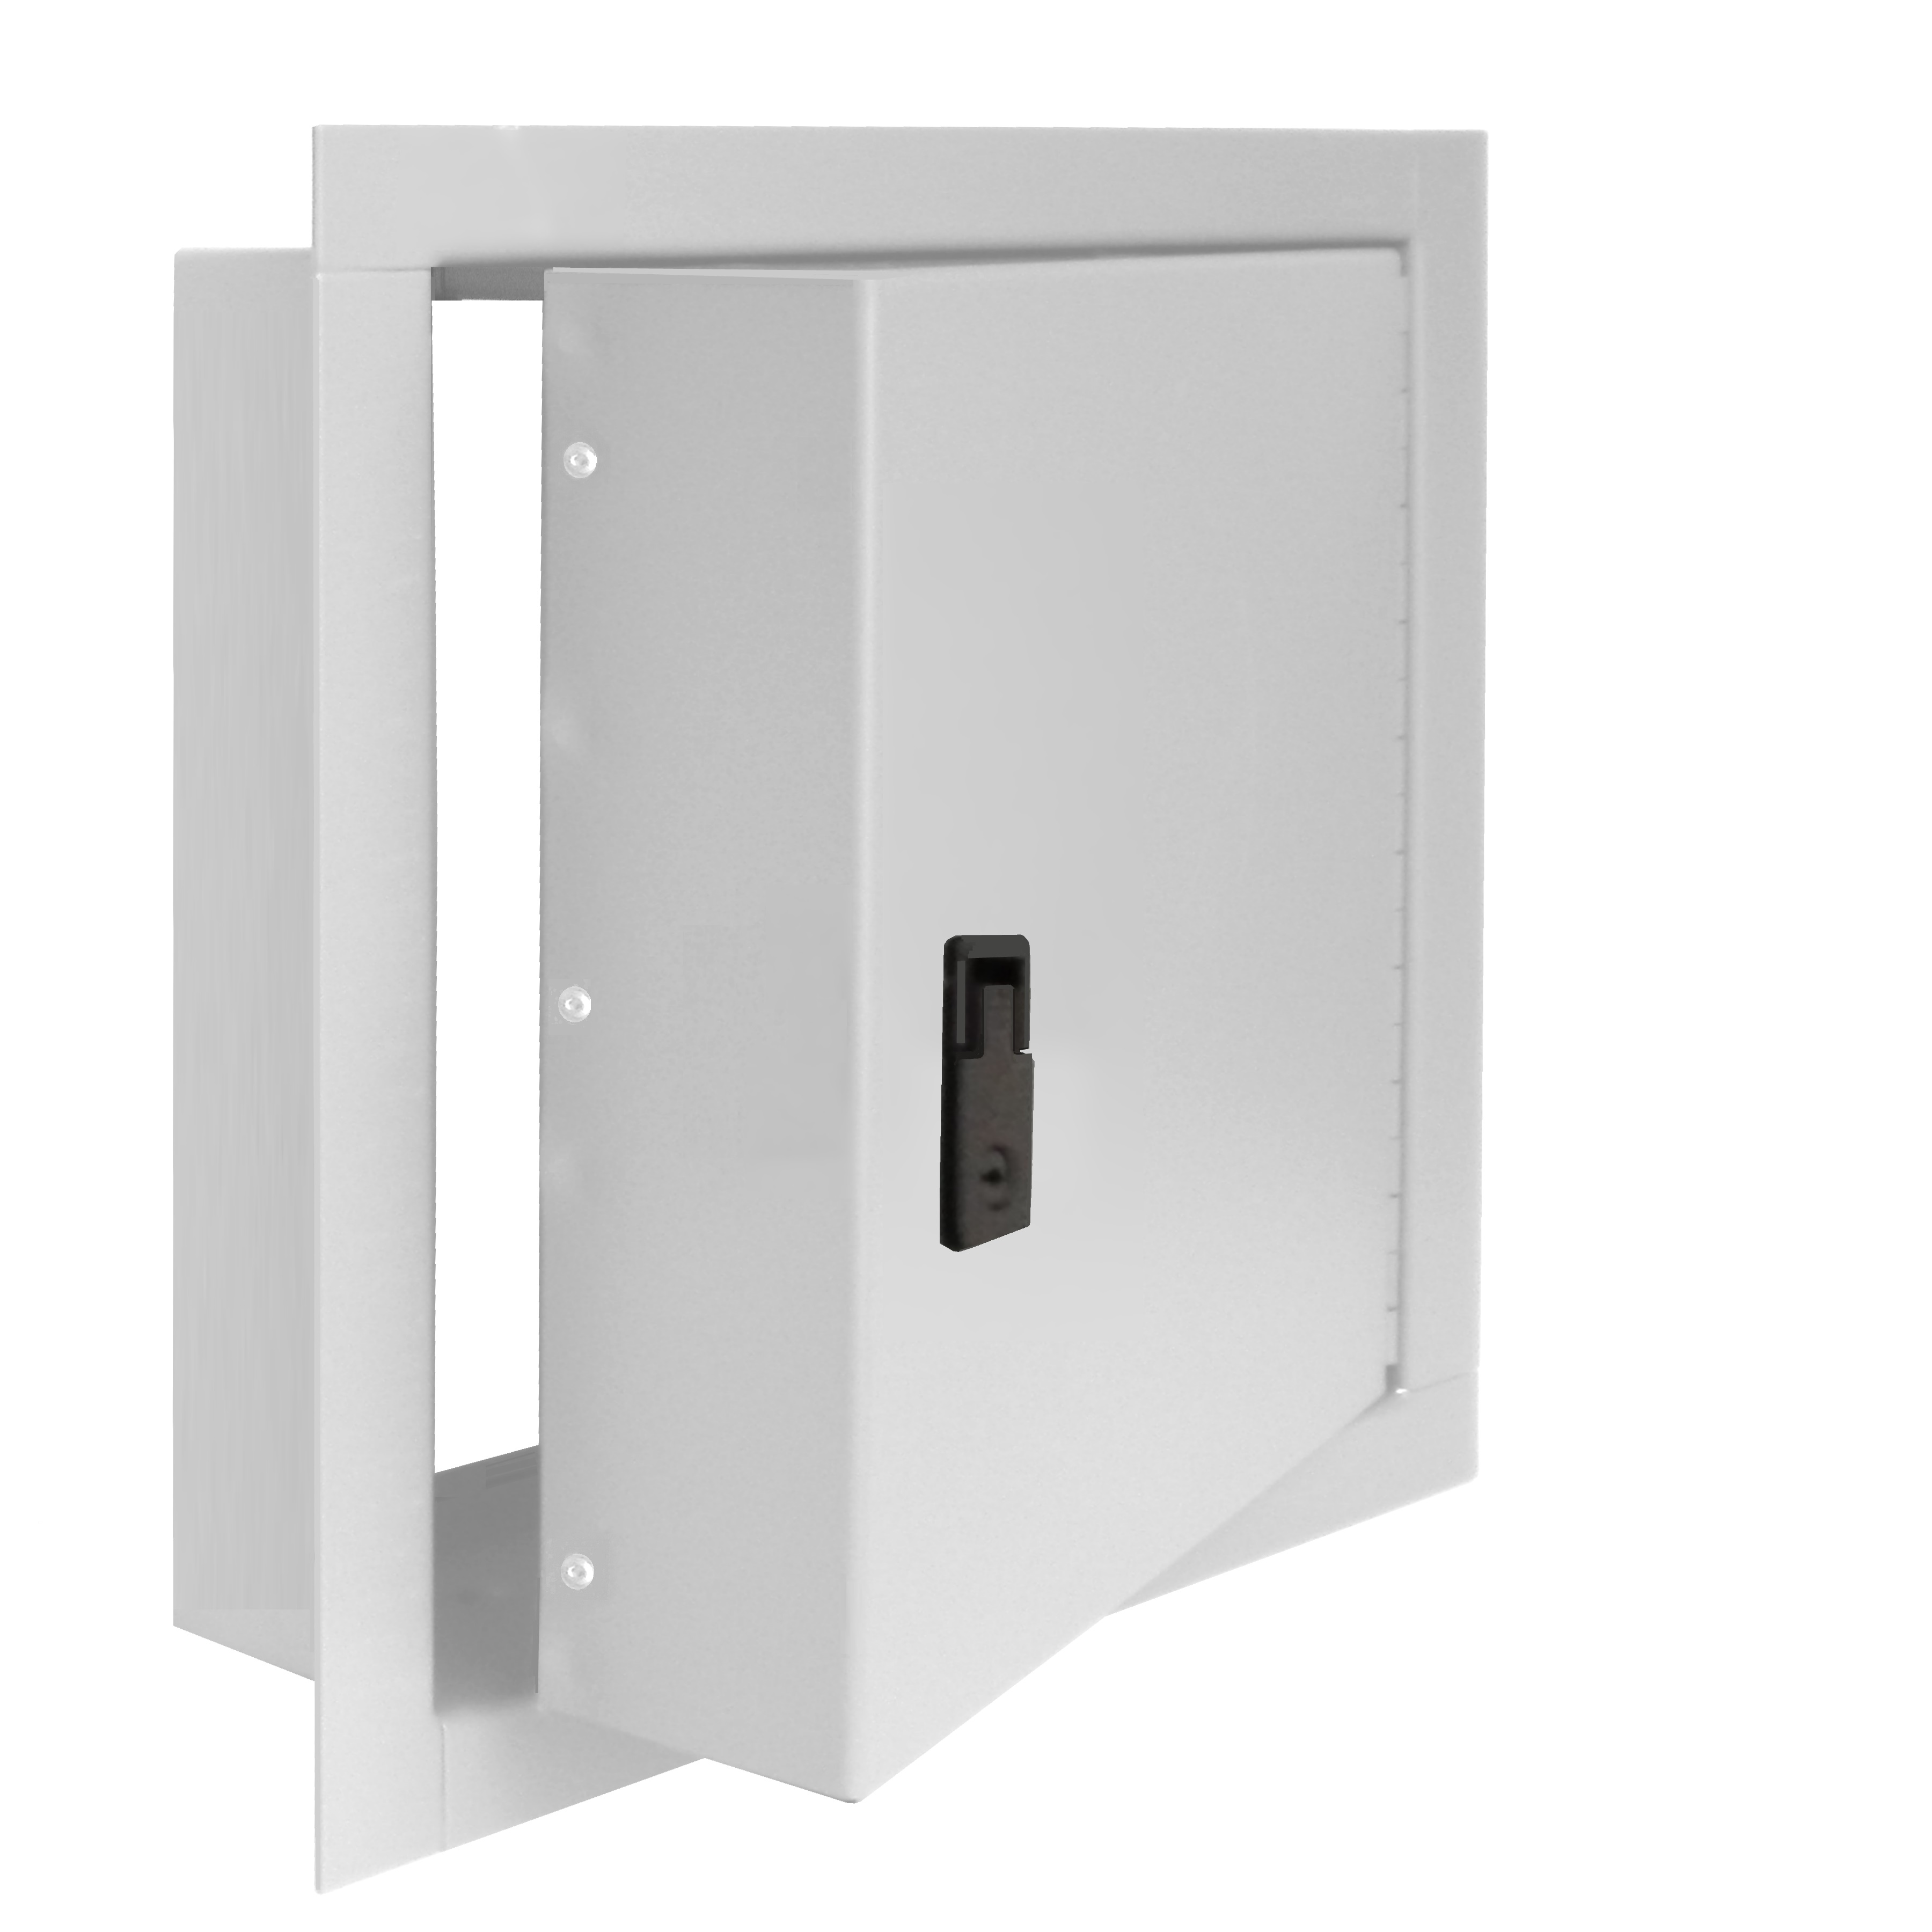 STC SERIES - STC 47 RATED FLUSH ACCESS PANELS FOR WALLS  sc 1 st  Activar Construction Products Group & STC SERIES - STC 47 RATED FLUSH ACCESS PANELS FOR WALLS | Activar ...